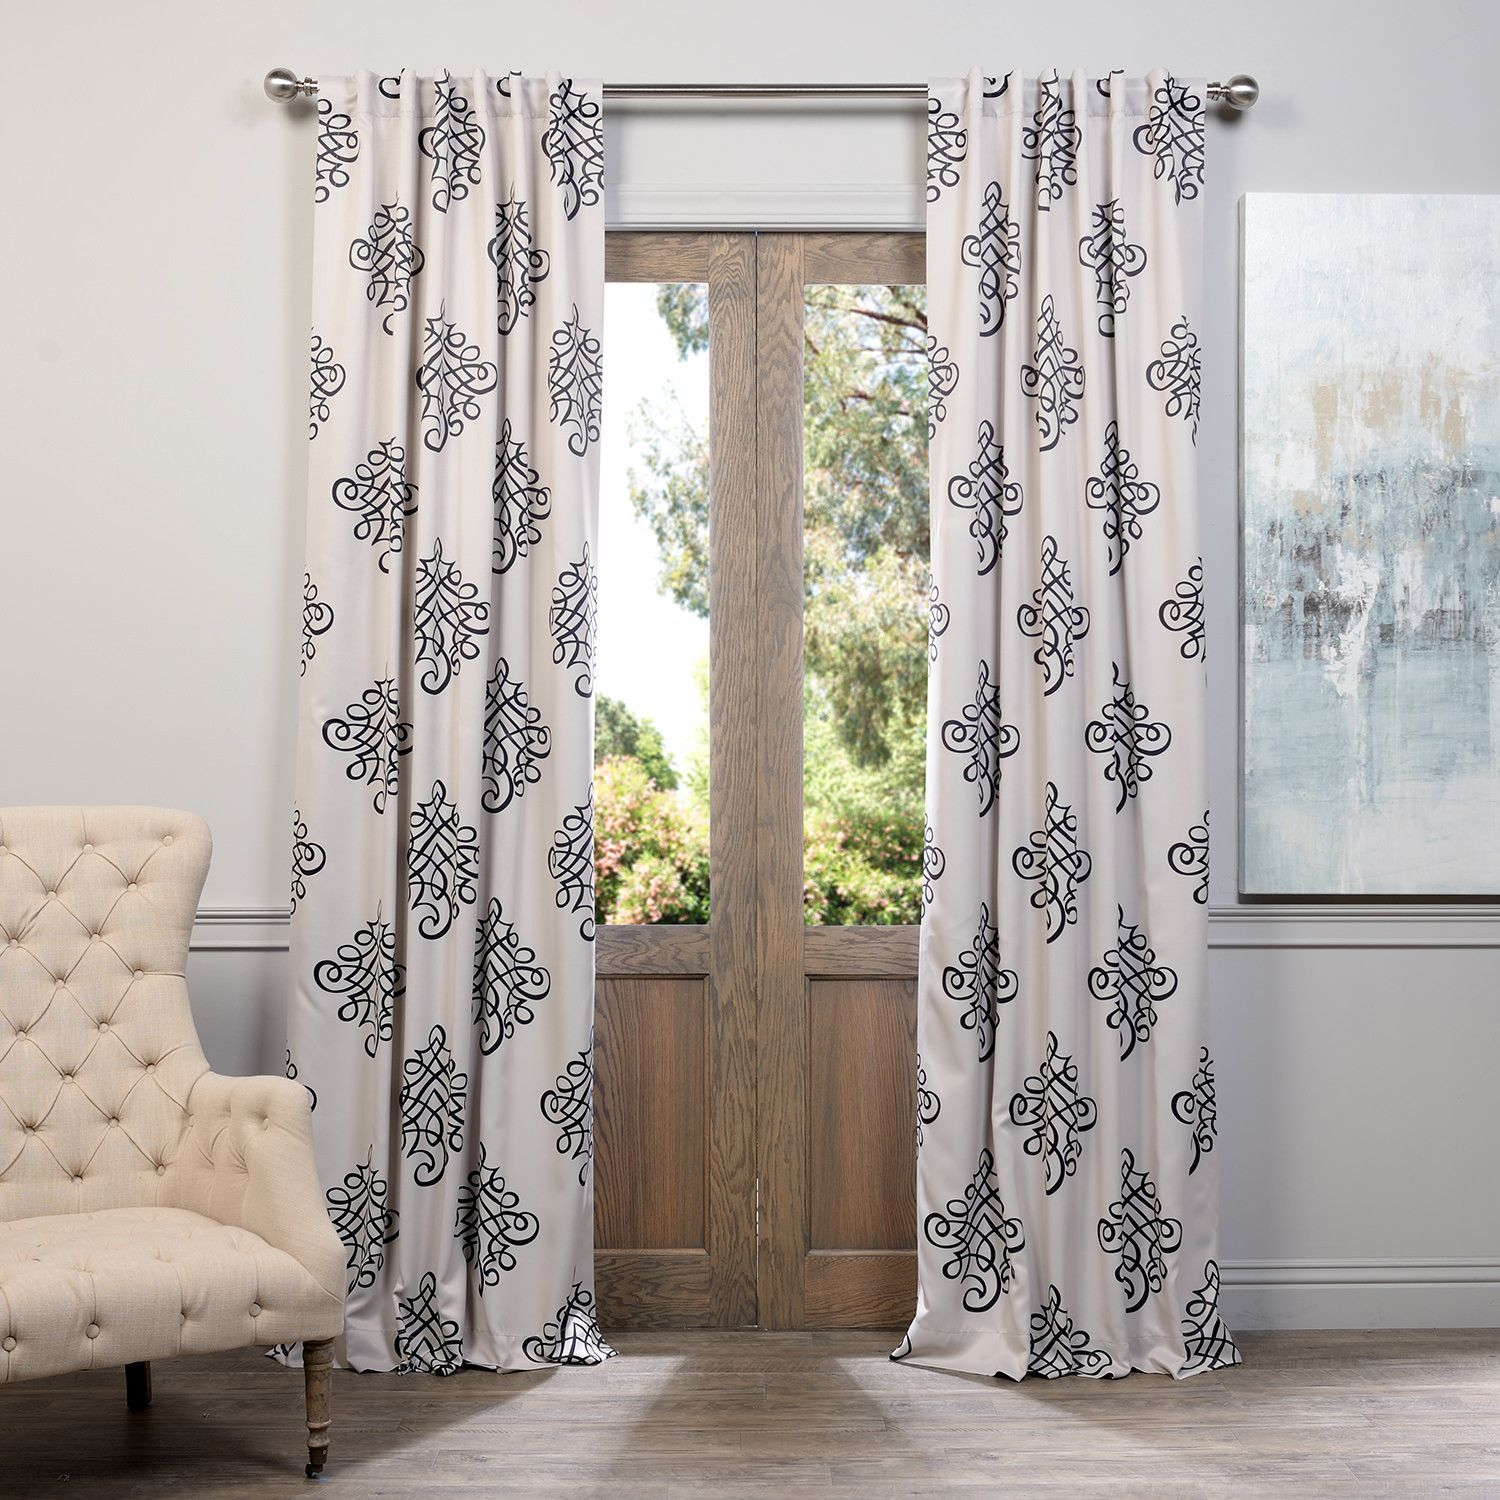 Tugra Damask Blackout Thermal Rod Pocket Single Curtain With Regard To Sarong Grey Printed Cotton Pole Pocket Single Curtain Panels (View 19 of 20)